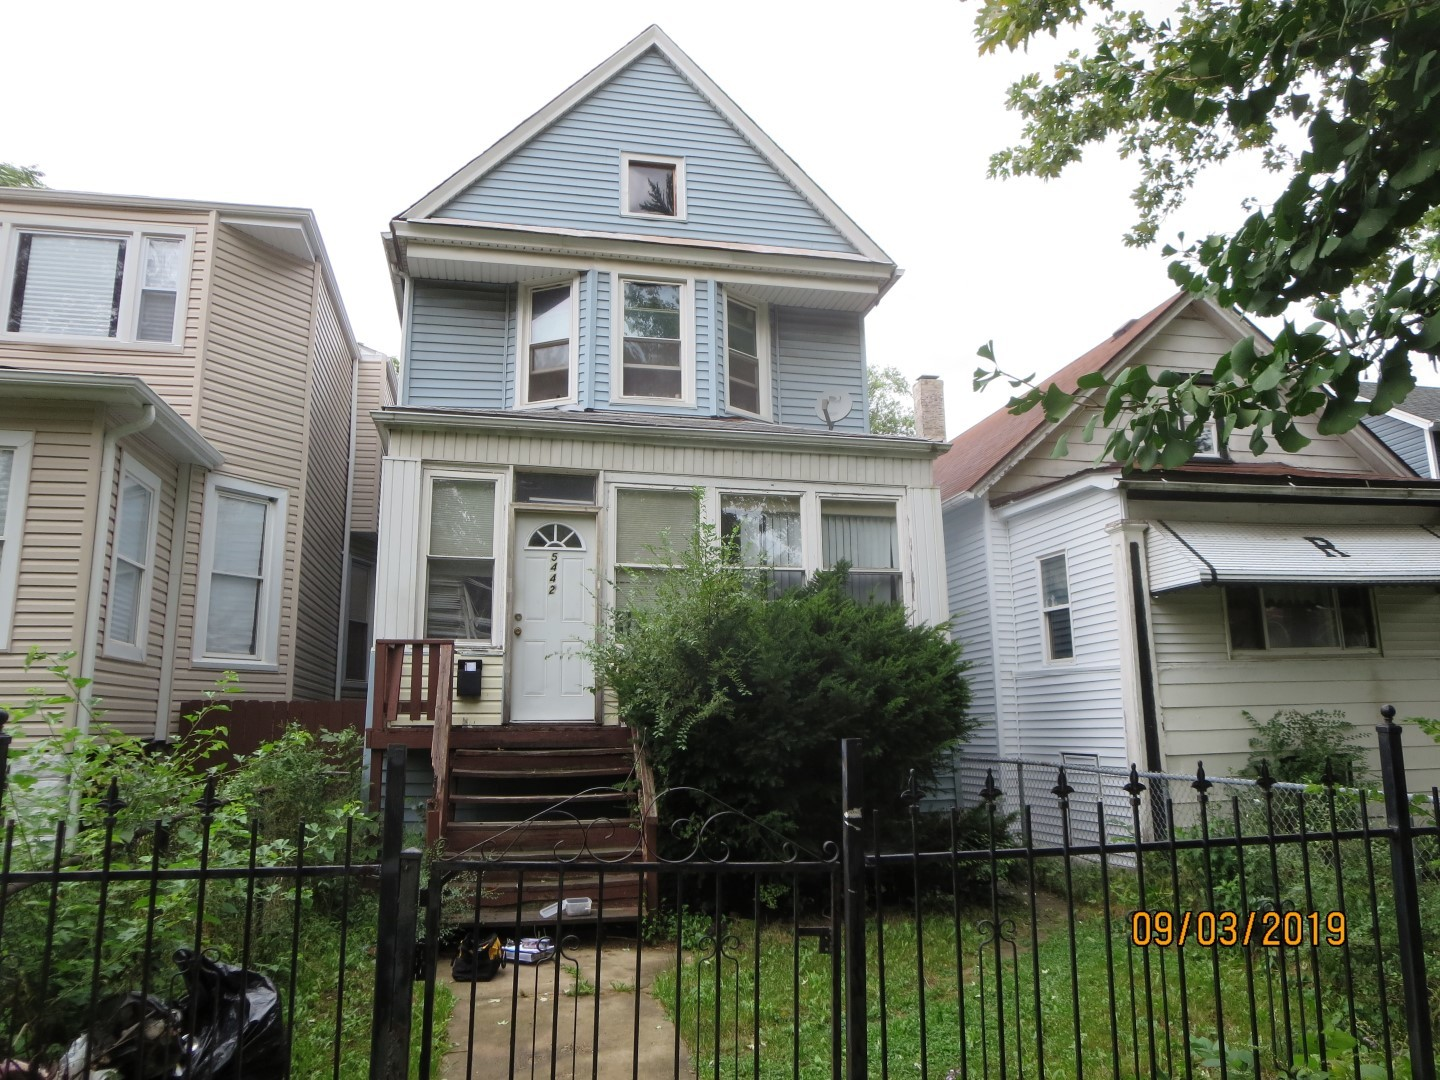 SINGLE FAMILY HOME SOLD AS-IS AND READY FOR A NEW FAMILY.   NOT BANK OWNED AND NOT A SHORT SALE, OWNERS ARE LOCAL AND MOTIVATED.  THIS HOME IS BEING SOLD AS-IS, SO PLEASE INSPECT PRIOR TO SUBMITTING AN OFFER.  PLEASE NOTE: 0% TAX PRORATIONS ARE OFFERED, THE SELLER WILL PAY CURRENT AND ALL PRIOR TAX BUT 0% CREDIT FOR FUTURE BILLS.  SPECIAL WARRANTY DEED AT CLOSING. NO SURVEY.  FOR FASTER RESPONSE PLEASE USE SELLERS CONTRACT, ADDENDUM AND DISCLOSURES UNDER DOCUMENTS.